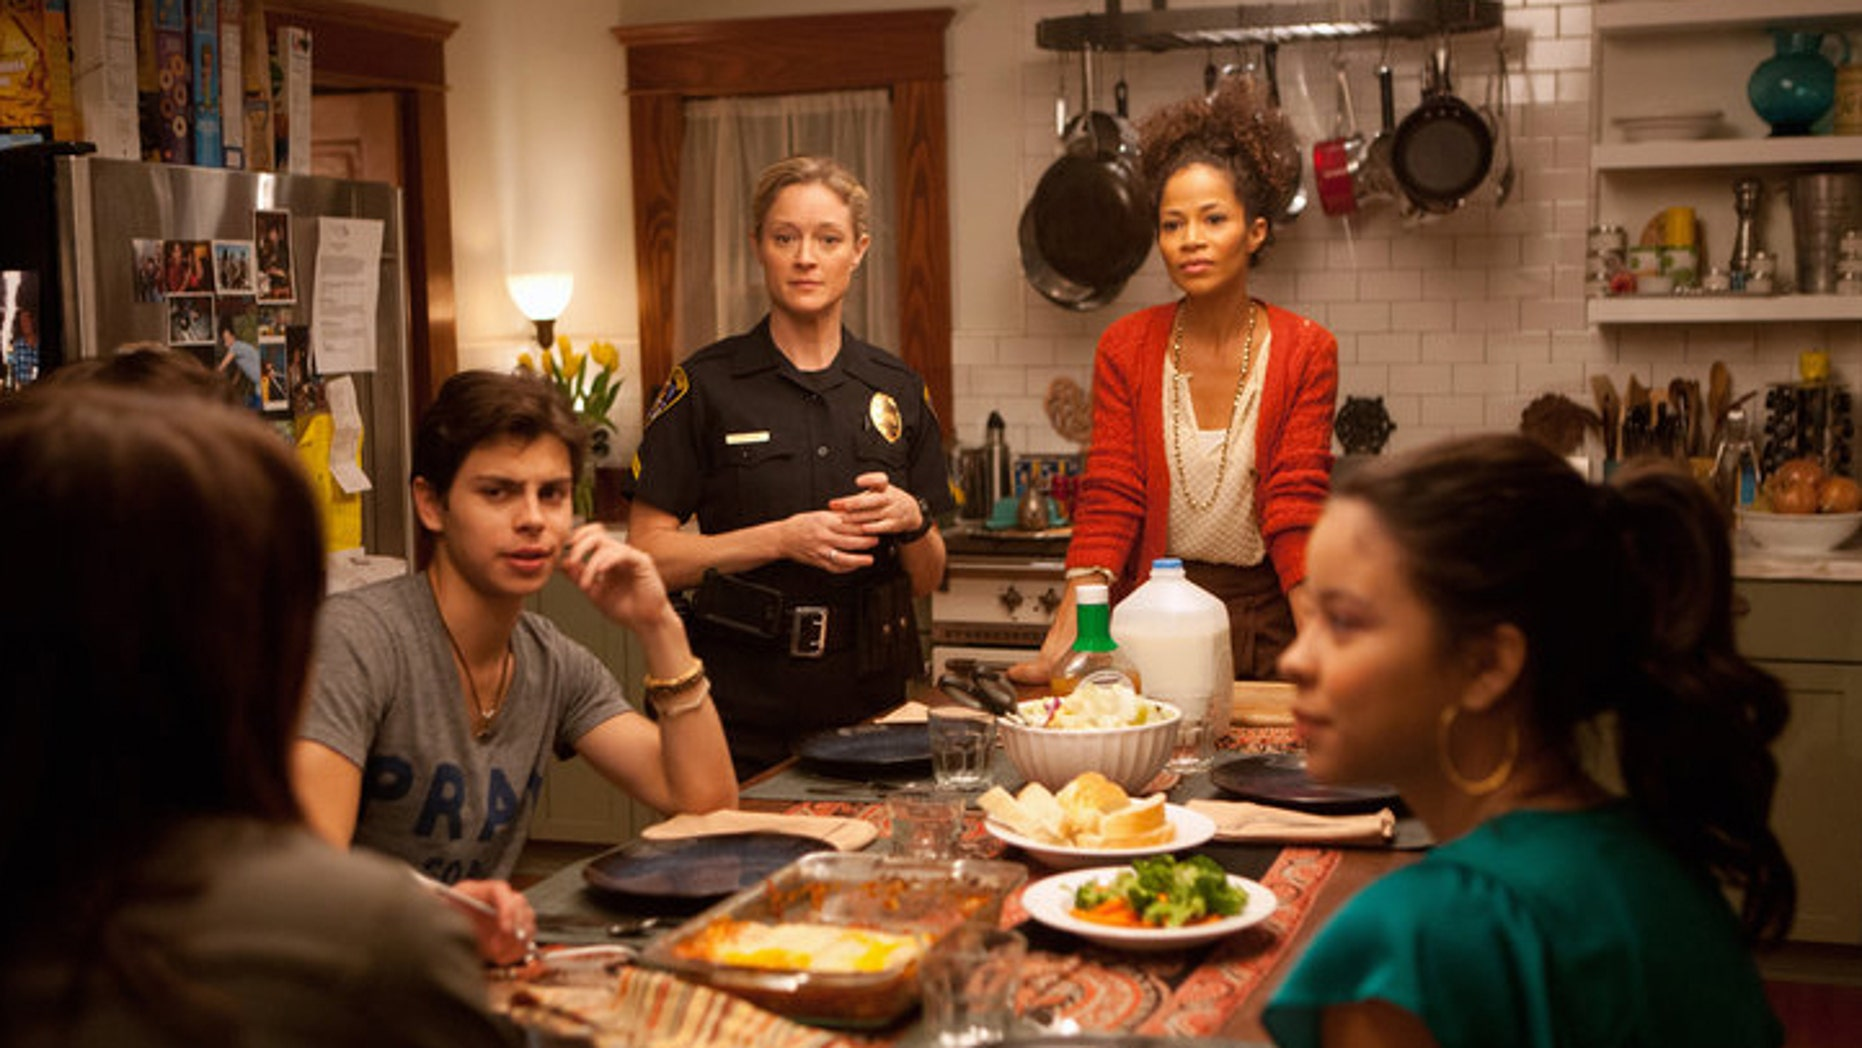 Amature video female orgasm